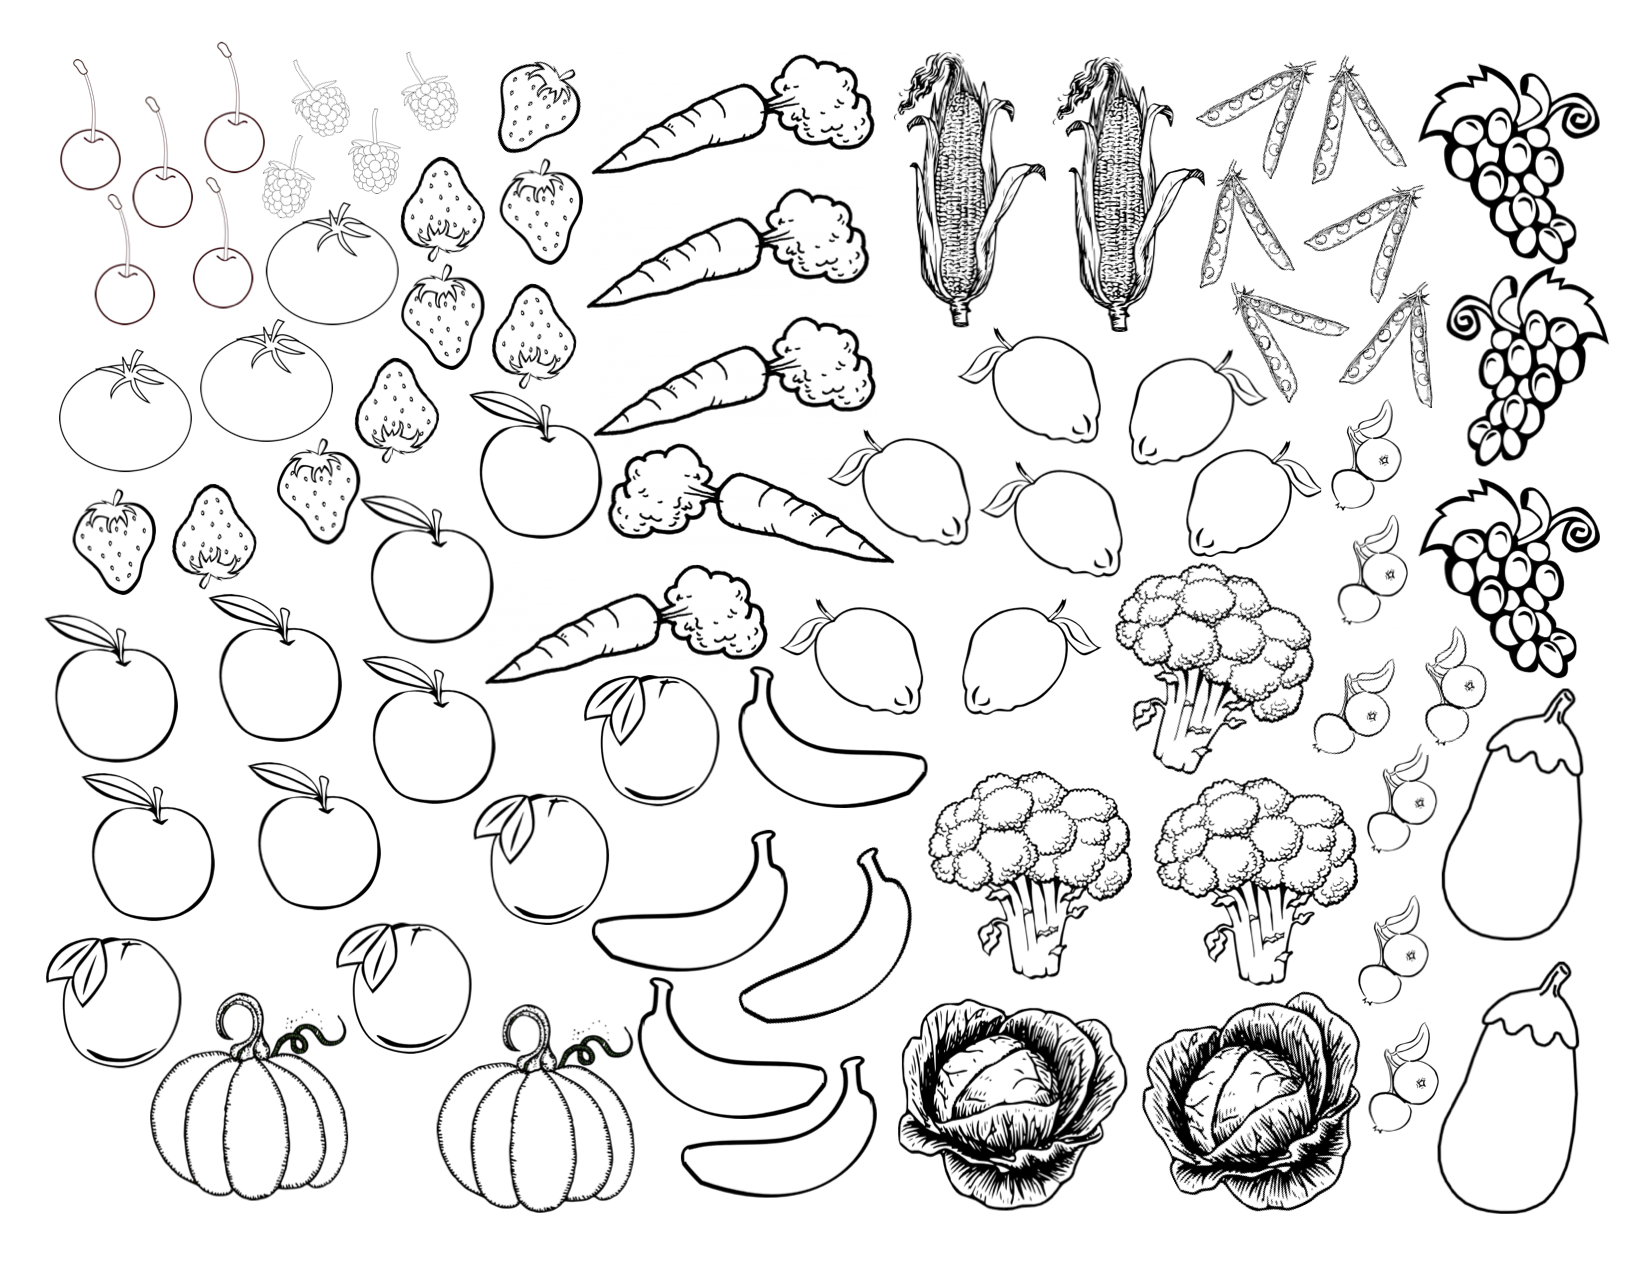 Fruits And Veggies Coloring Sheet PDF Click To Enlarge